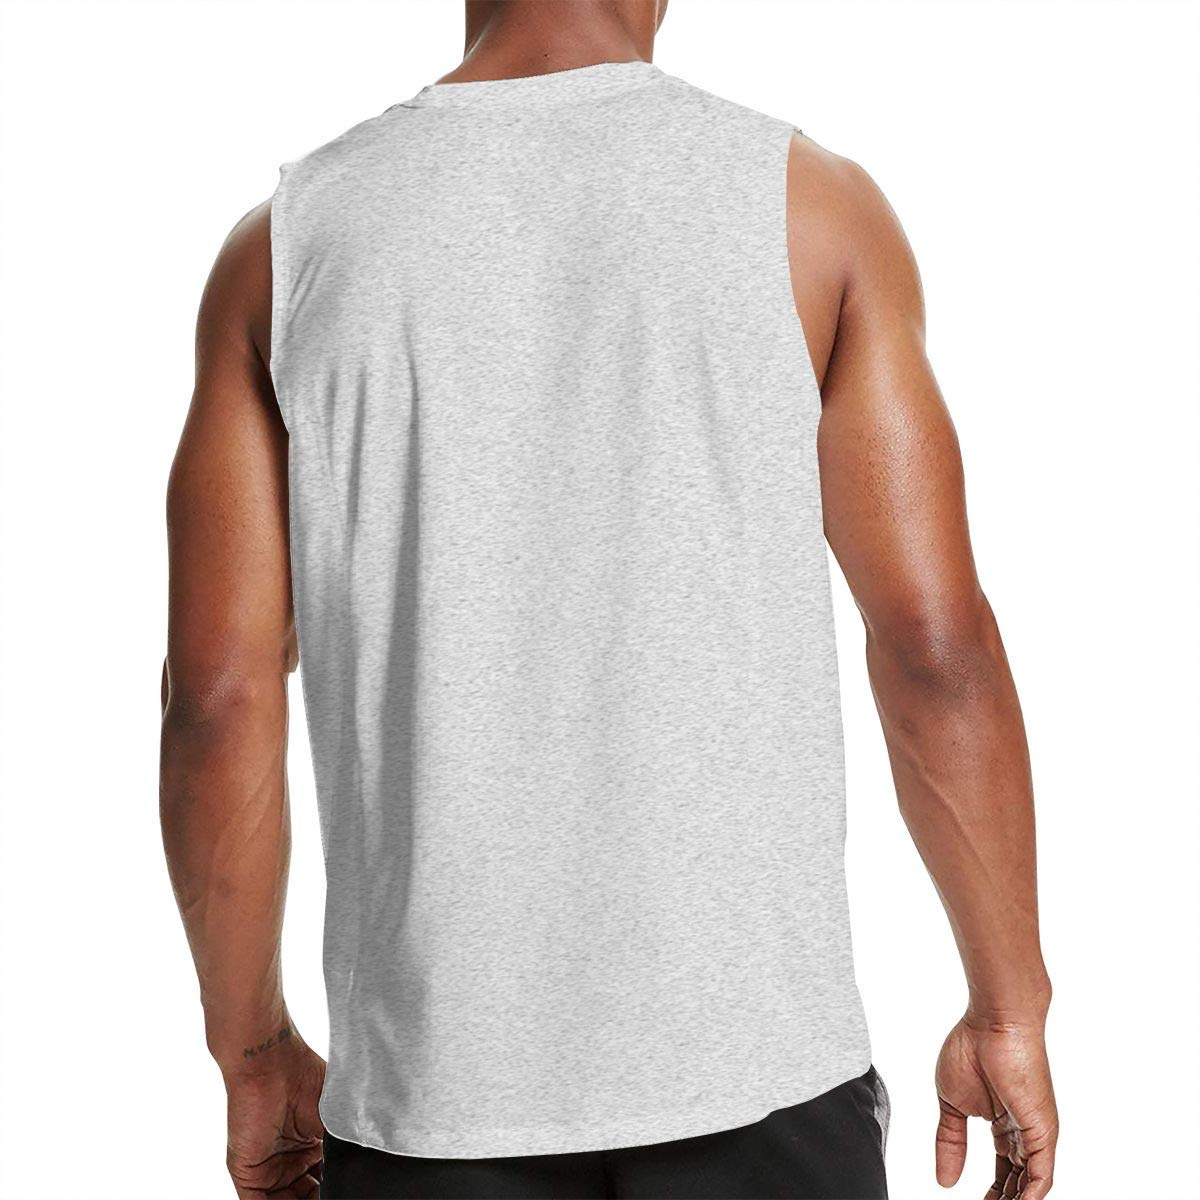 Official WildFit Sleeveless Vest T-Shirts Fit Men